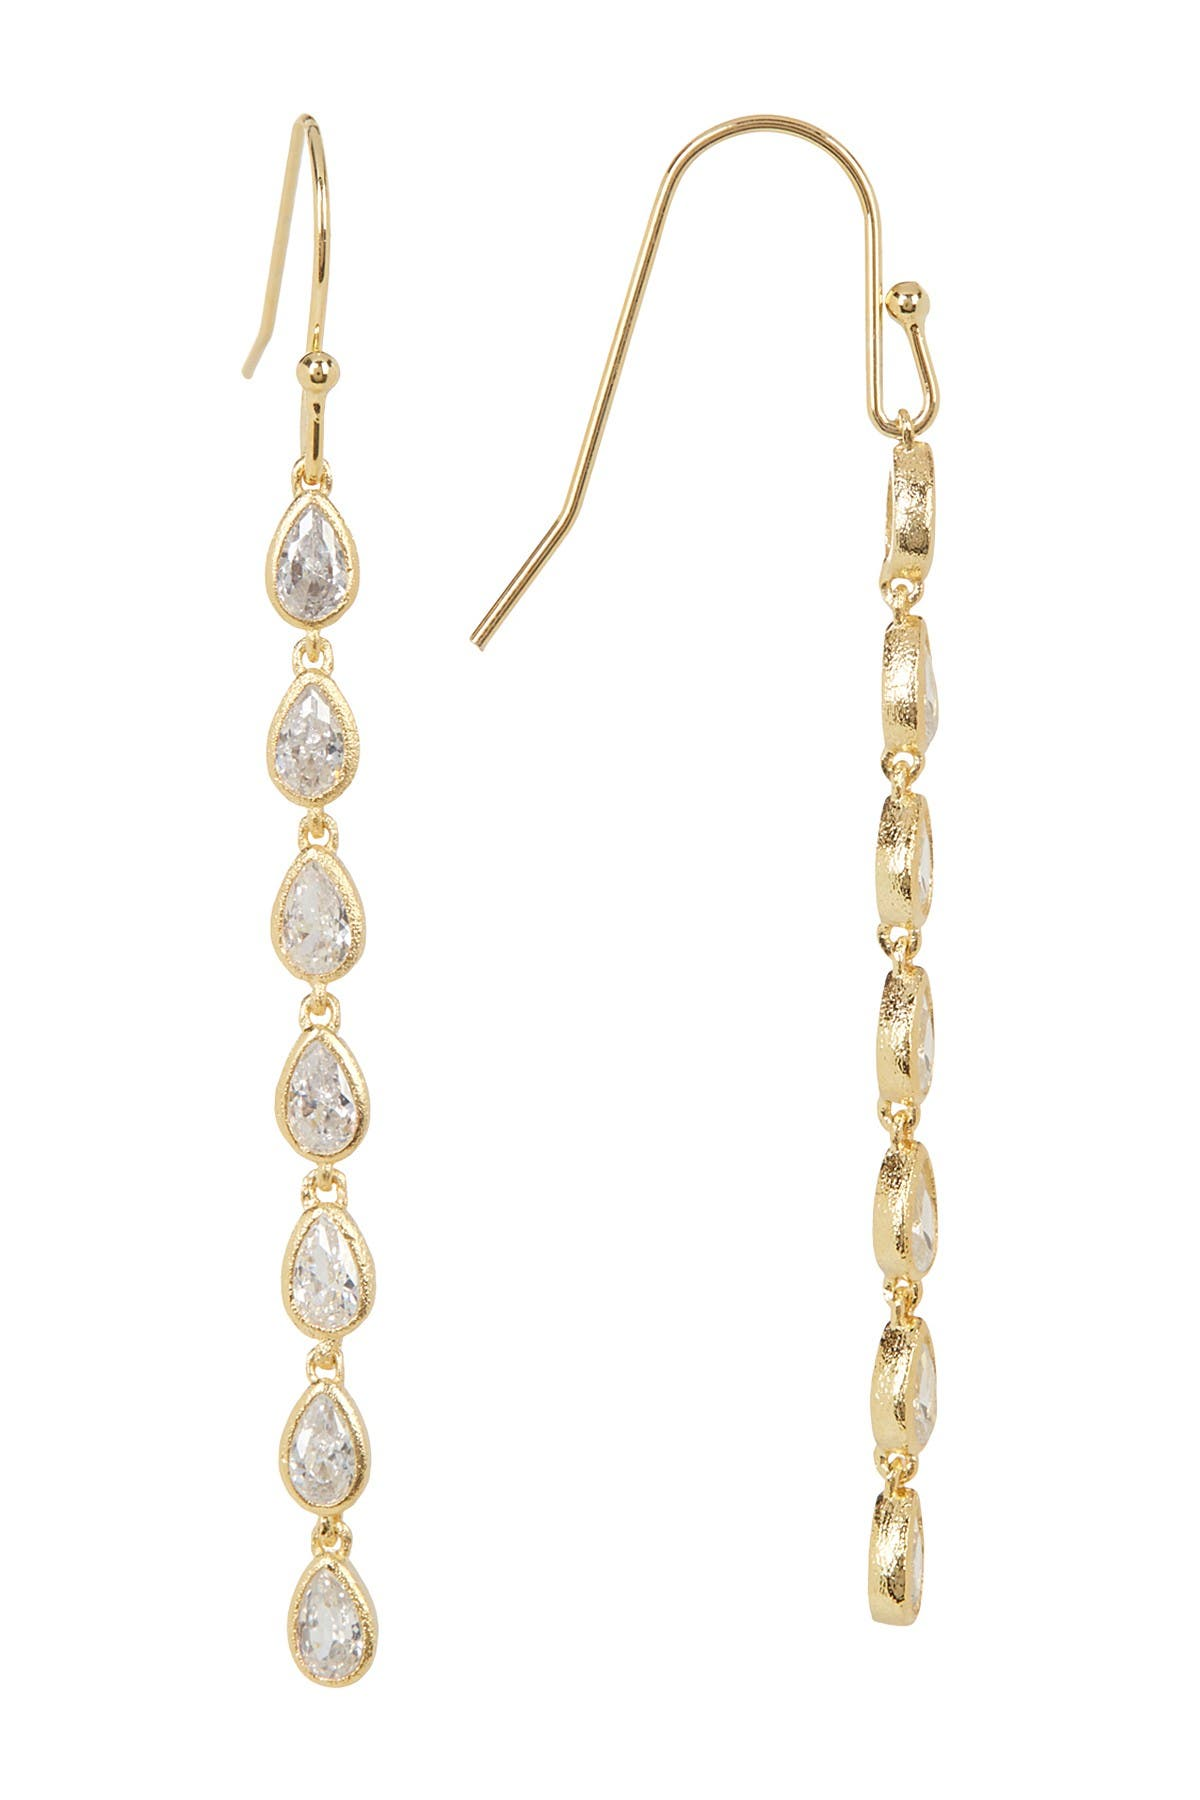 Image of Rivka Friedman Linear Simulated Diamond Teardrop Earrings